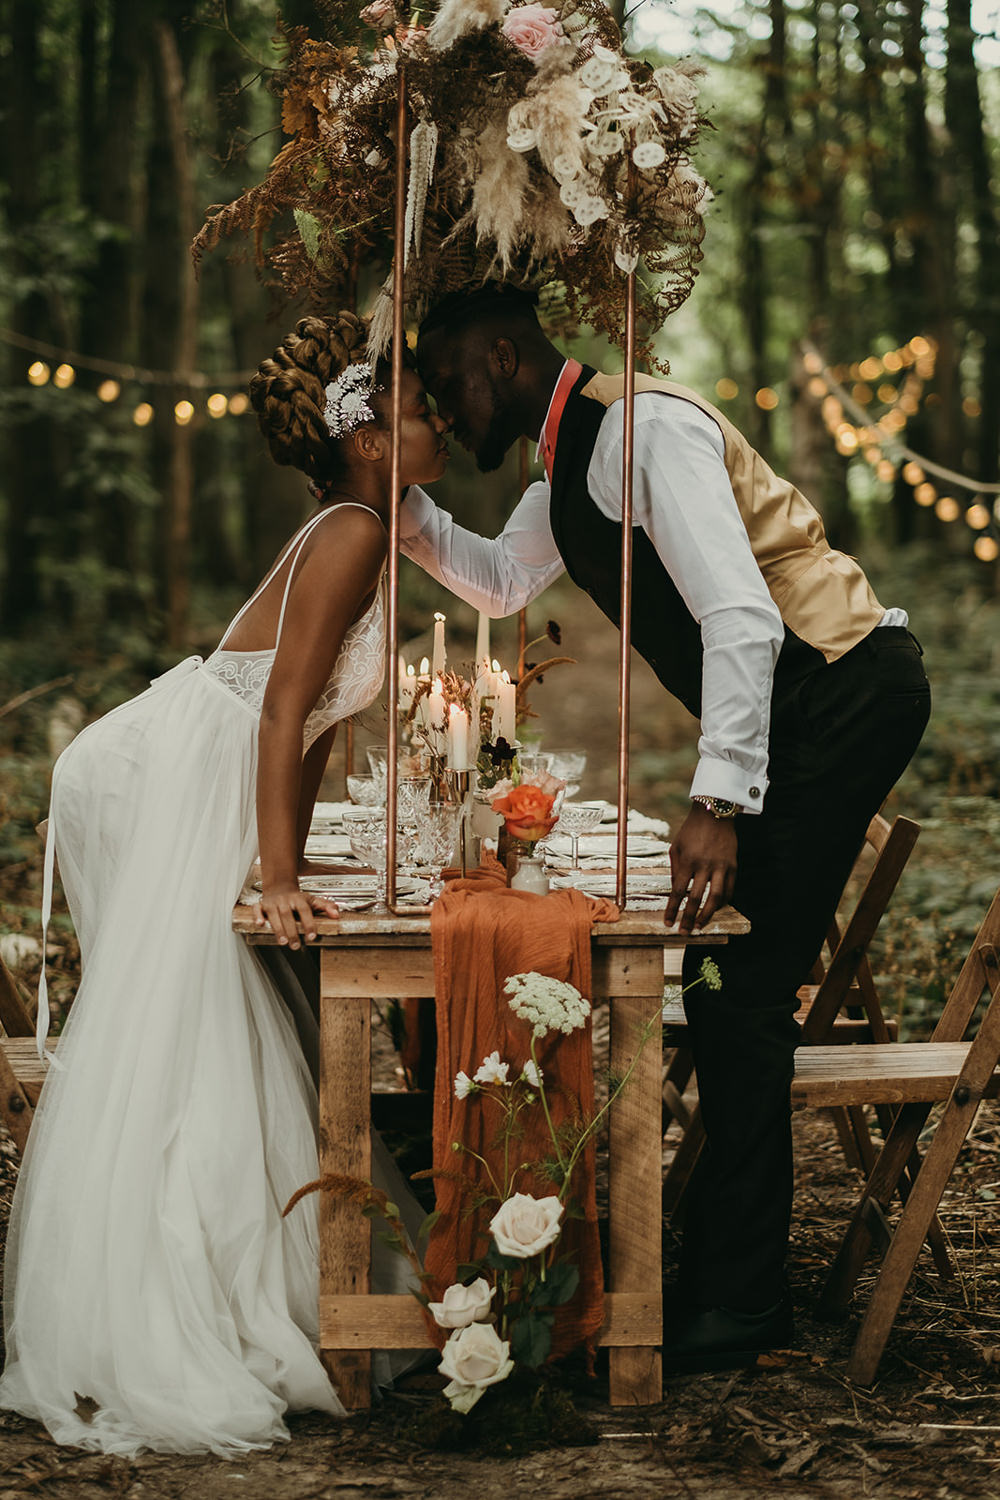 Woods Wedding Tom Jeavons Photography Table Tablescape Decor Candles Flowers Lighting